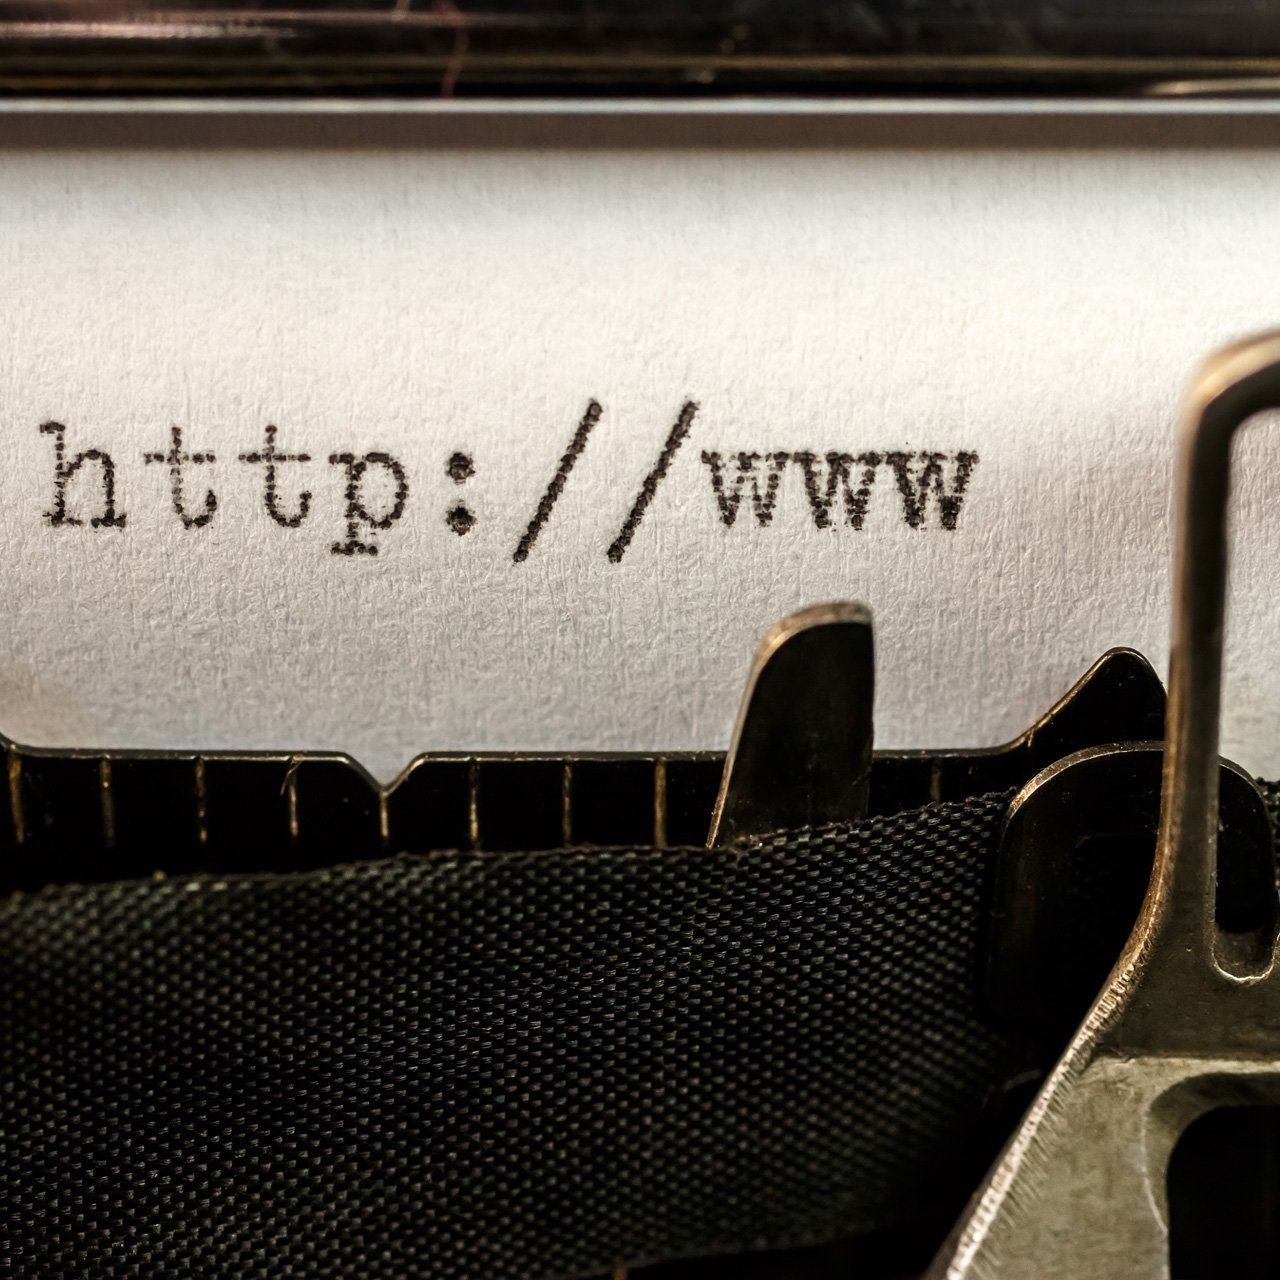 Make your web surfing completely private